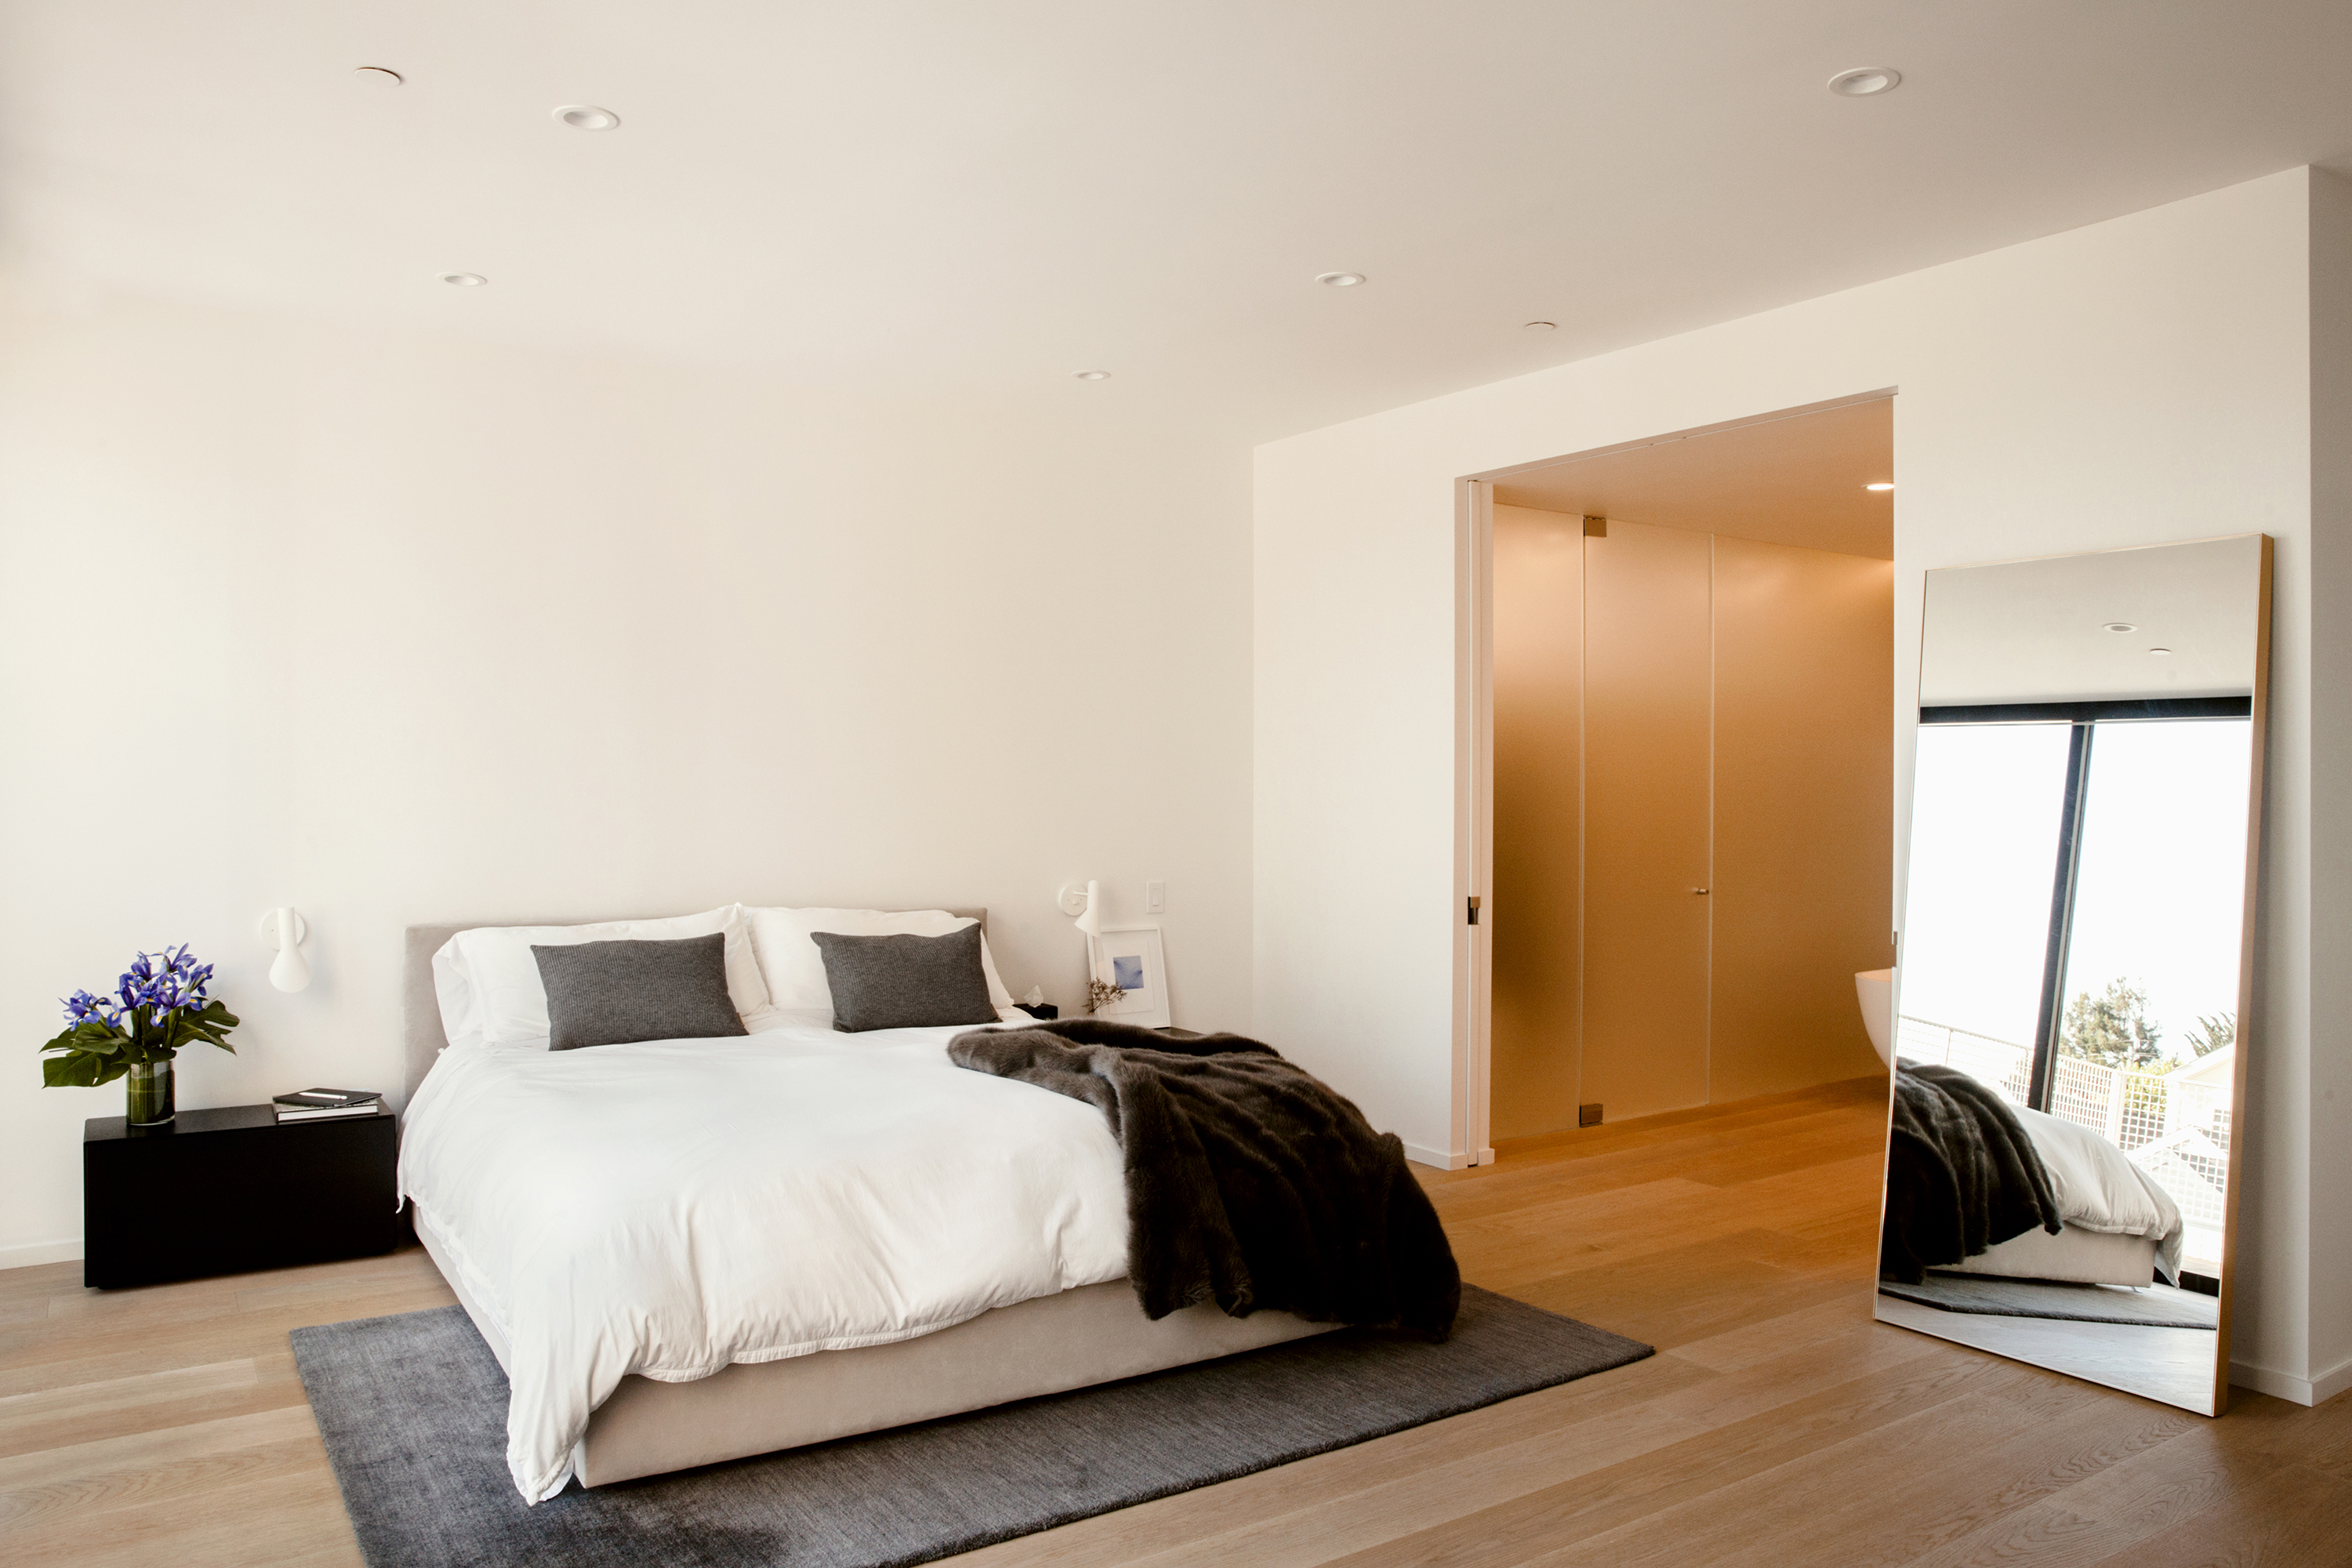 A white bedroom with a beige bed on gray rug, large rectangular mirror leaning against a wall and a view into the master bath.